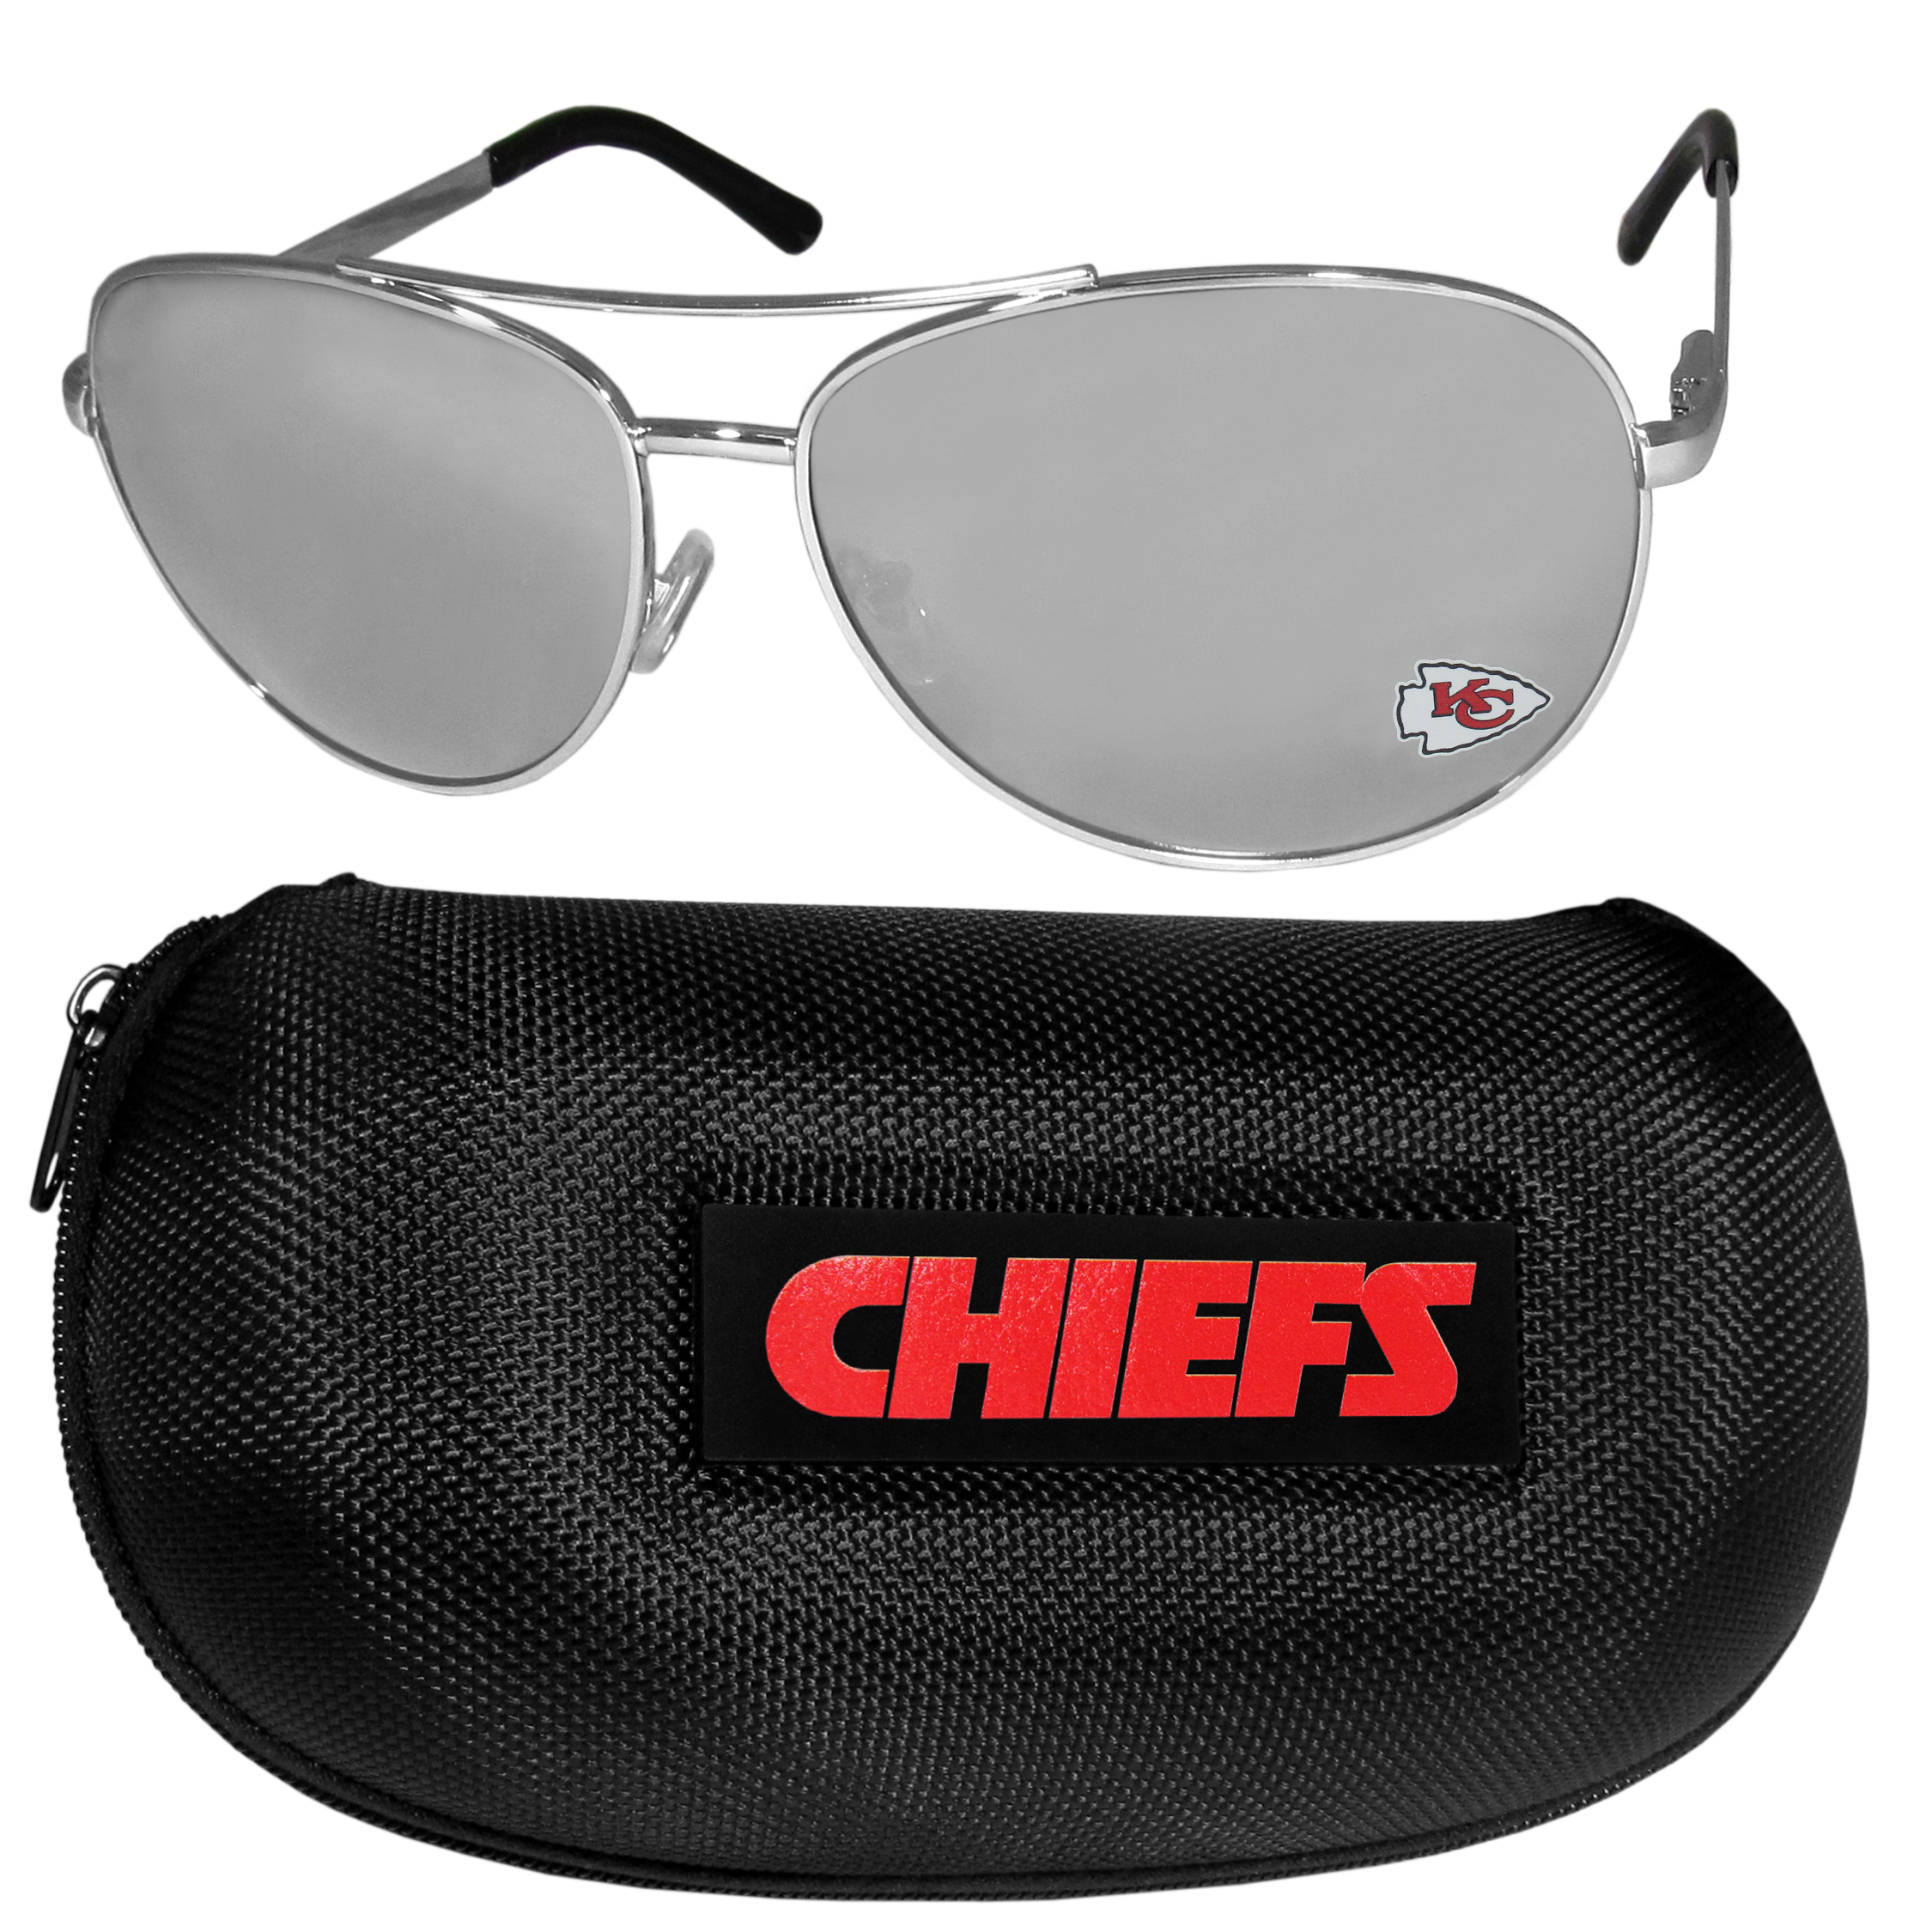 Kansas City Chiefs Aviator Sunglasses and Zippered Carrying Case - Aviator sunglasses are truly an iconic retro fashion statement that never goes out-of-style. Our Kansas City Chiefs  aviator sunglasses pair this classic look with your love of the game. The iridium coated lenses reduce glare while driving, boating, golfing and their 100% UVA/UVB rating provides you with the maximum UV protection for all your outdoor activities. A millennial favorite, these affordable designer frames are the perfect eyewear accessory for a sports fan that is looking for high-quality at an affordable price. The durable, flex hinged frames are tough enough for hiking and camping or if you prefer sun bathing by the pool or on the beach these shades will really stand the test of time. The sunglasses come with a hard shell zippered case which has a large team logo on the lid that will make even the most die-hard fan proud!